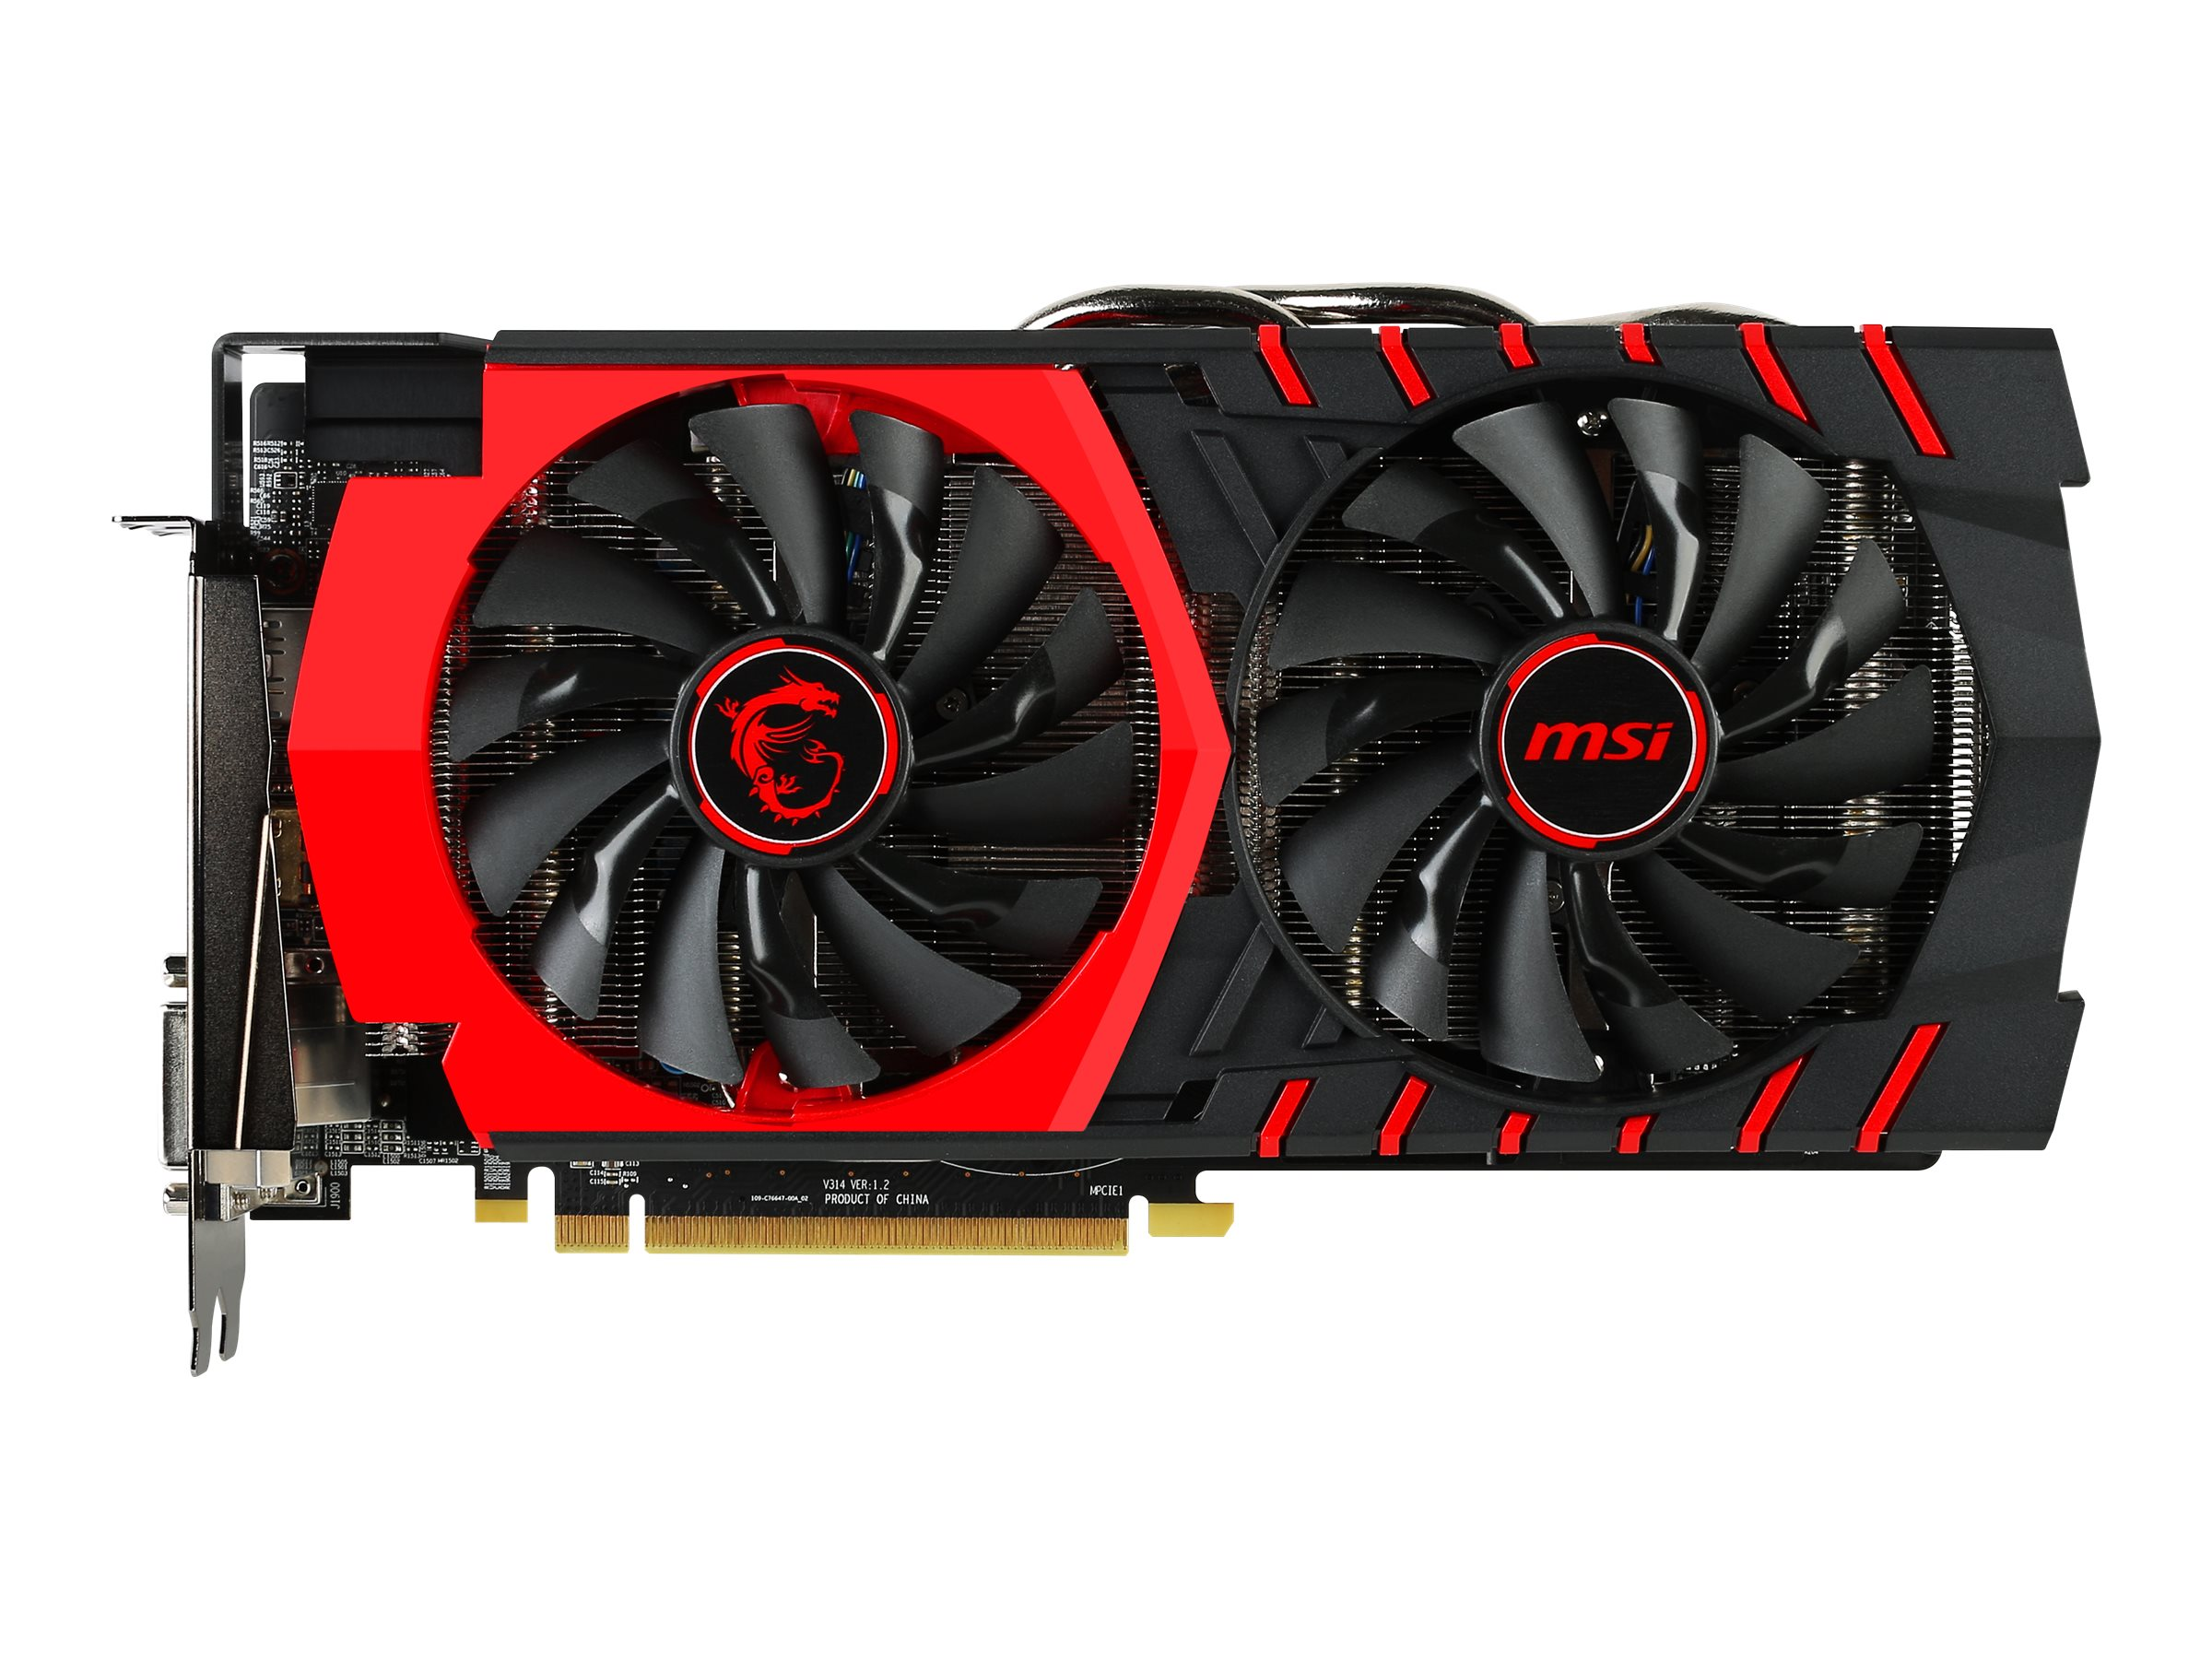 Microstar Radeon R9 380 PCIe Graphics Card, 4GB GDDR5, R9 380 GAMING 4G, 23306150, Graphics/Video Accelerators